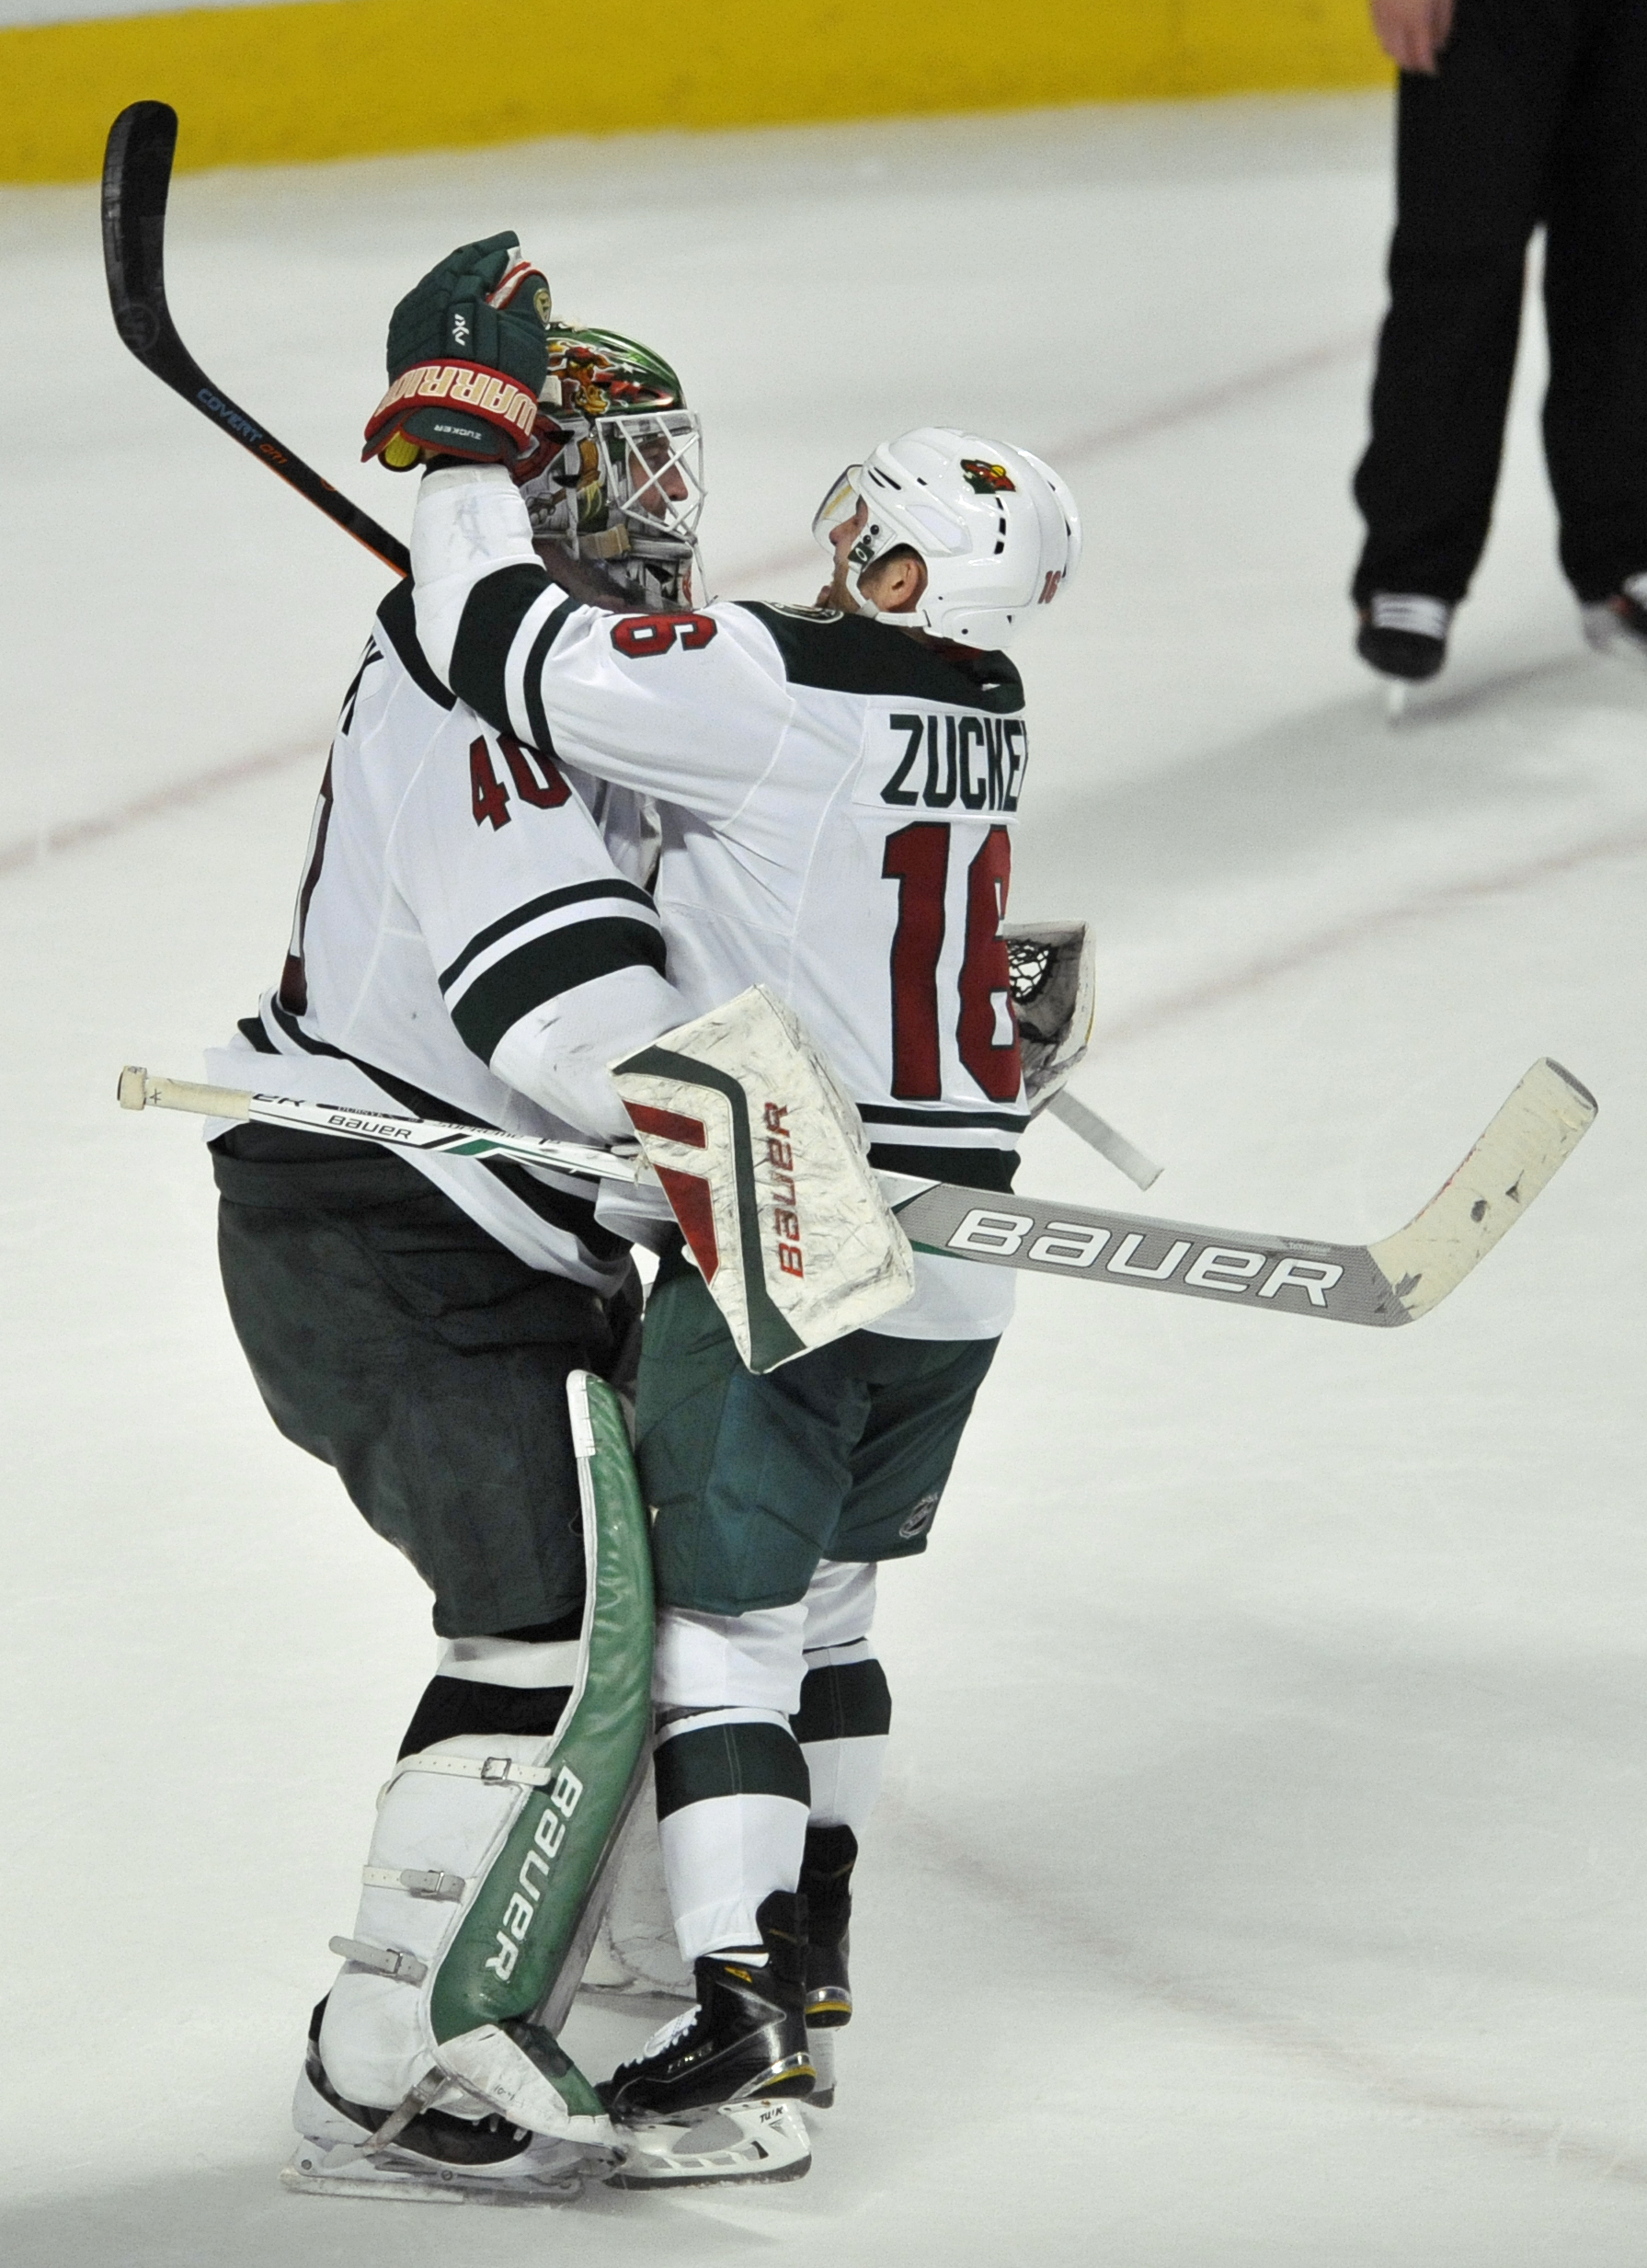 Minnesota Wild goalie Devan Dubnyk (40) celebrates with teammate Jason Zucker (16) after defeating the Chicago Blackhawks 3-2 in a shootout during an NHL hockey game Sunday, March 20, 2016, in Chicago. (AP Photo/Paul Beaty)